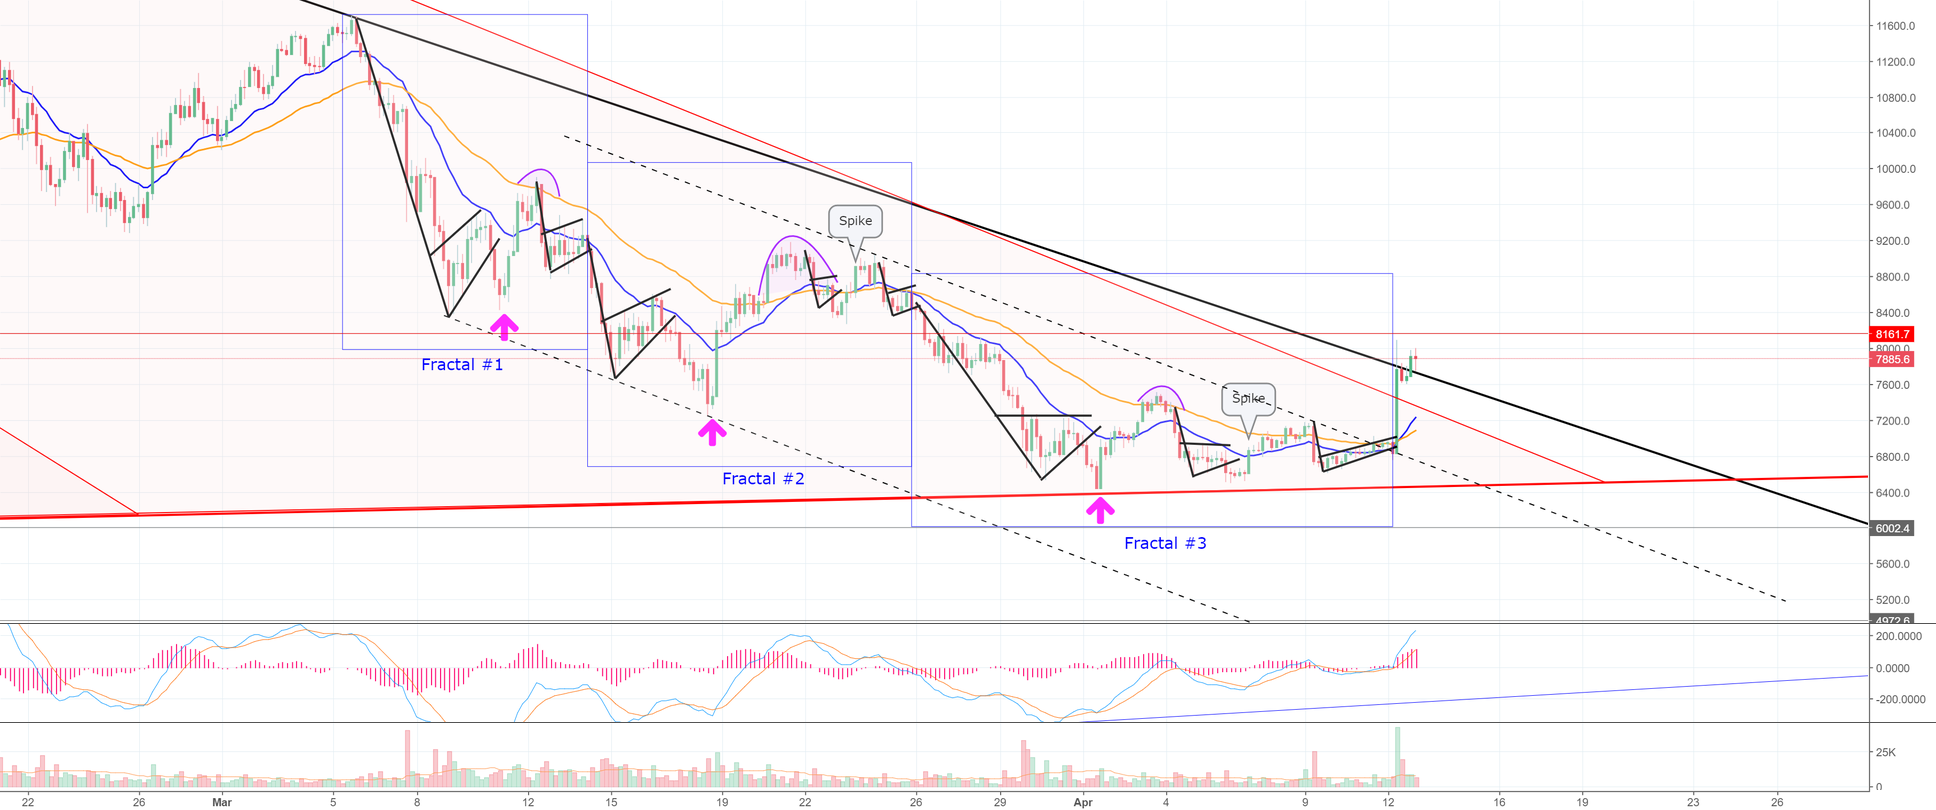 Bulls Get A Relief Rally in Bitcoin! I Don't Trust it. (BTC)